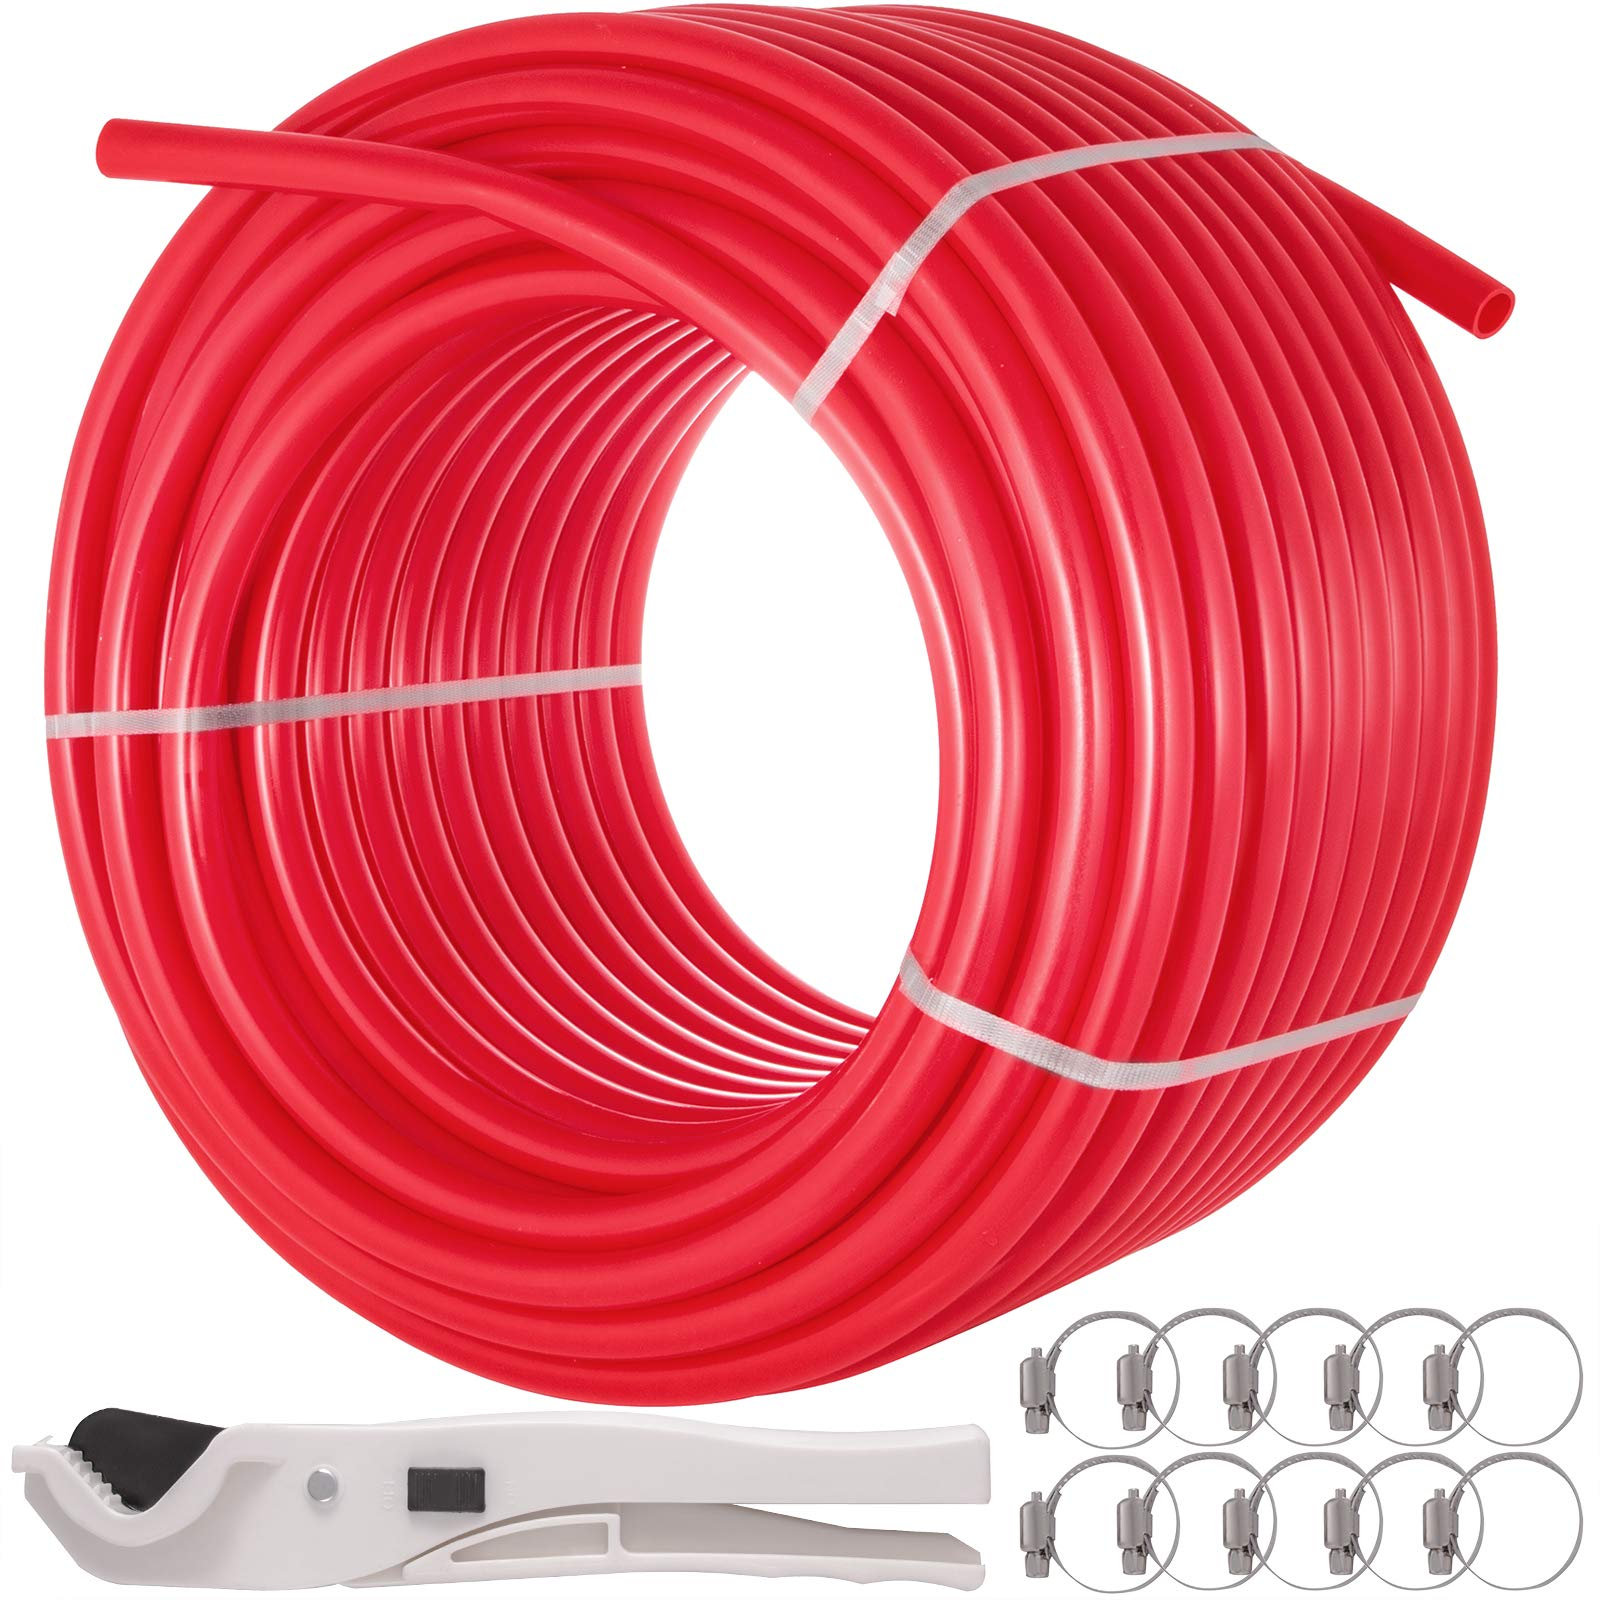 Happybuy 1 Inch X 300ft PEX Tubing Pipe Oxygen Barrier EVOH Anti-corrosion Cold Hot Water Durable for Residential Commercial Radiant Floor Heating PEX Pipe by Happybuy